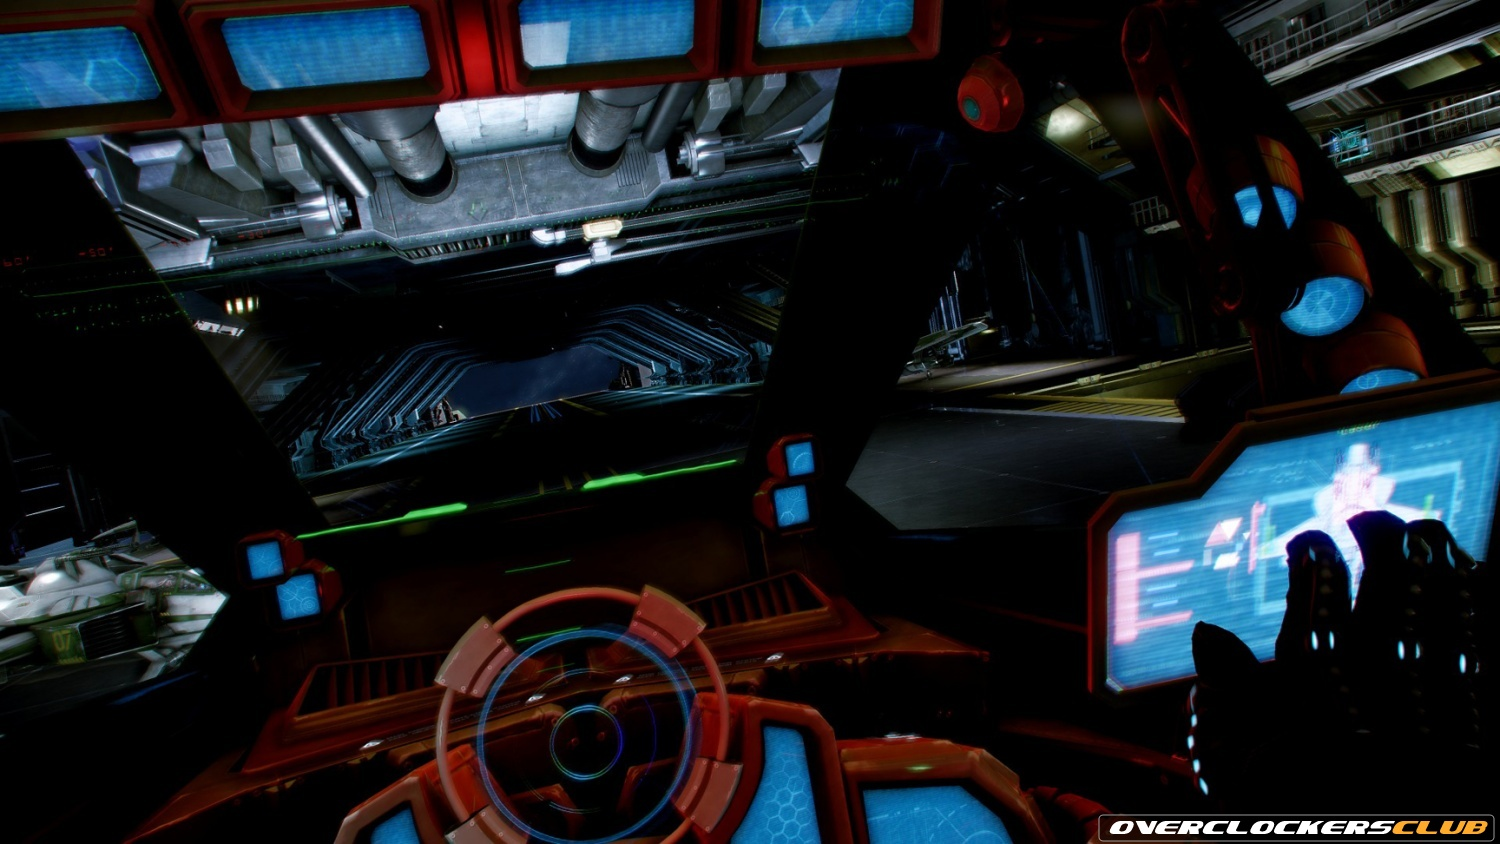 Creator of Wing Commander Announces Star Citizen - New Open-World Space Combat Sim